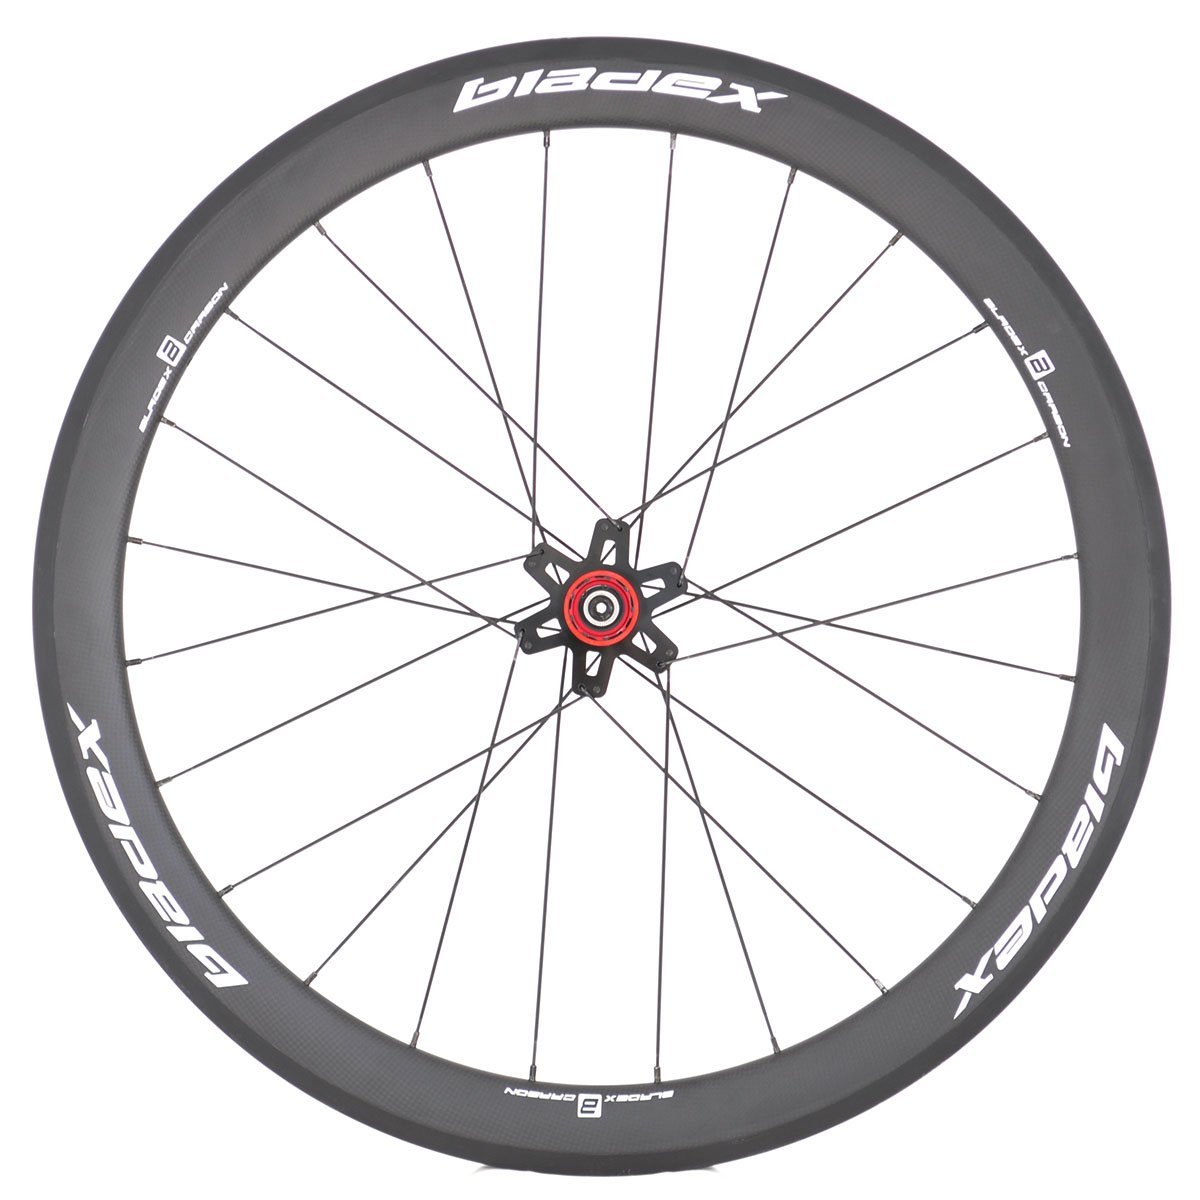 SDM 202 Carbon Road Bike Wheelset For Climbing And Sprinting